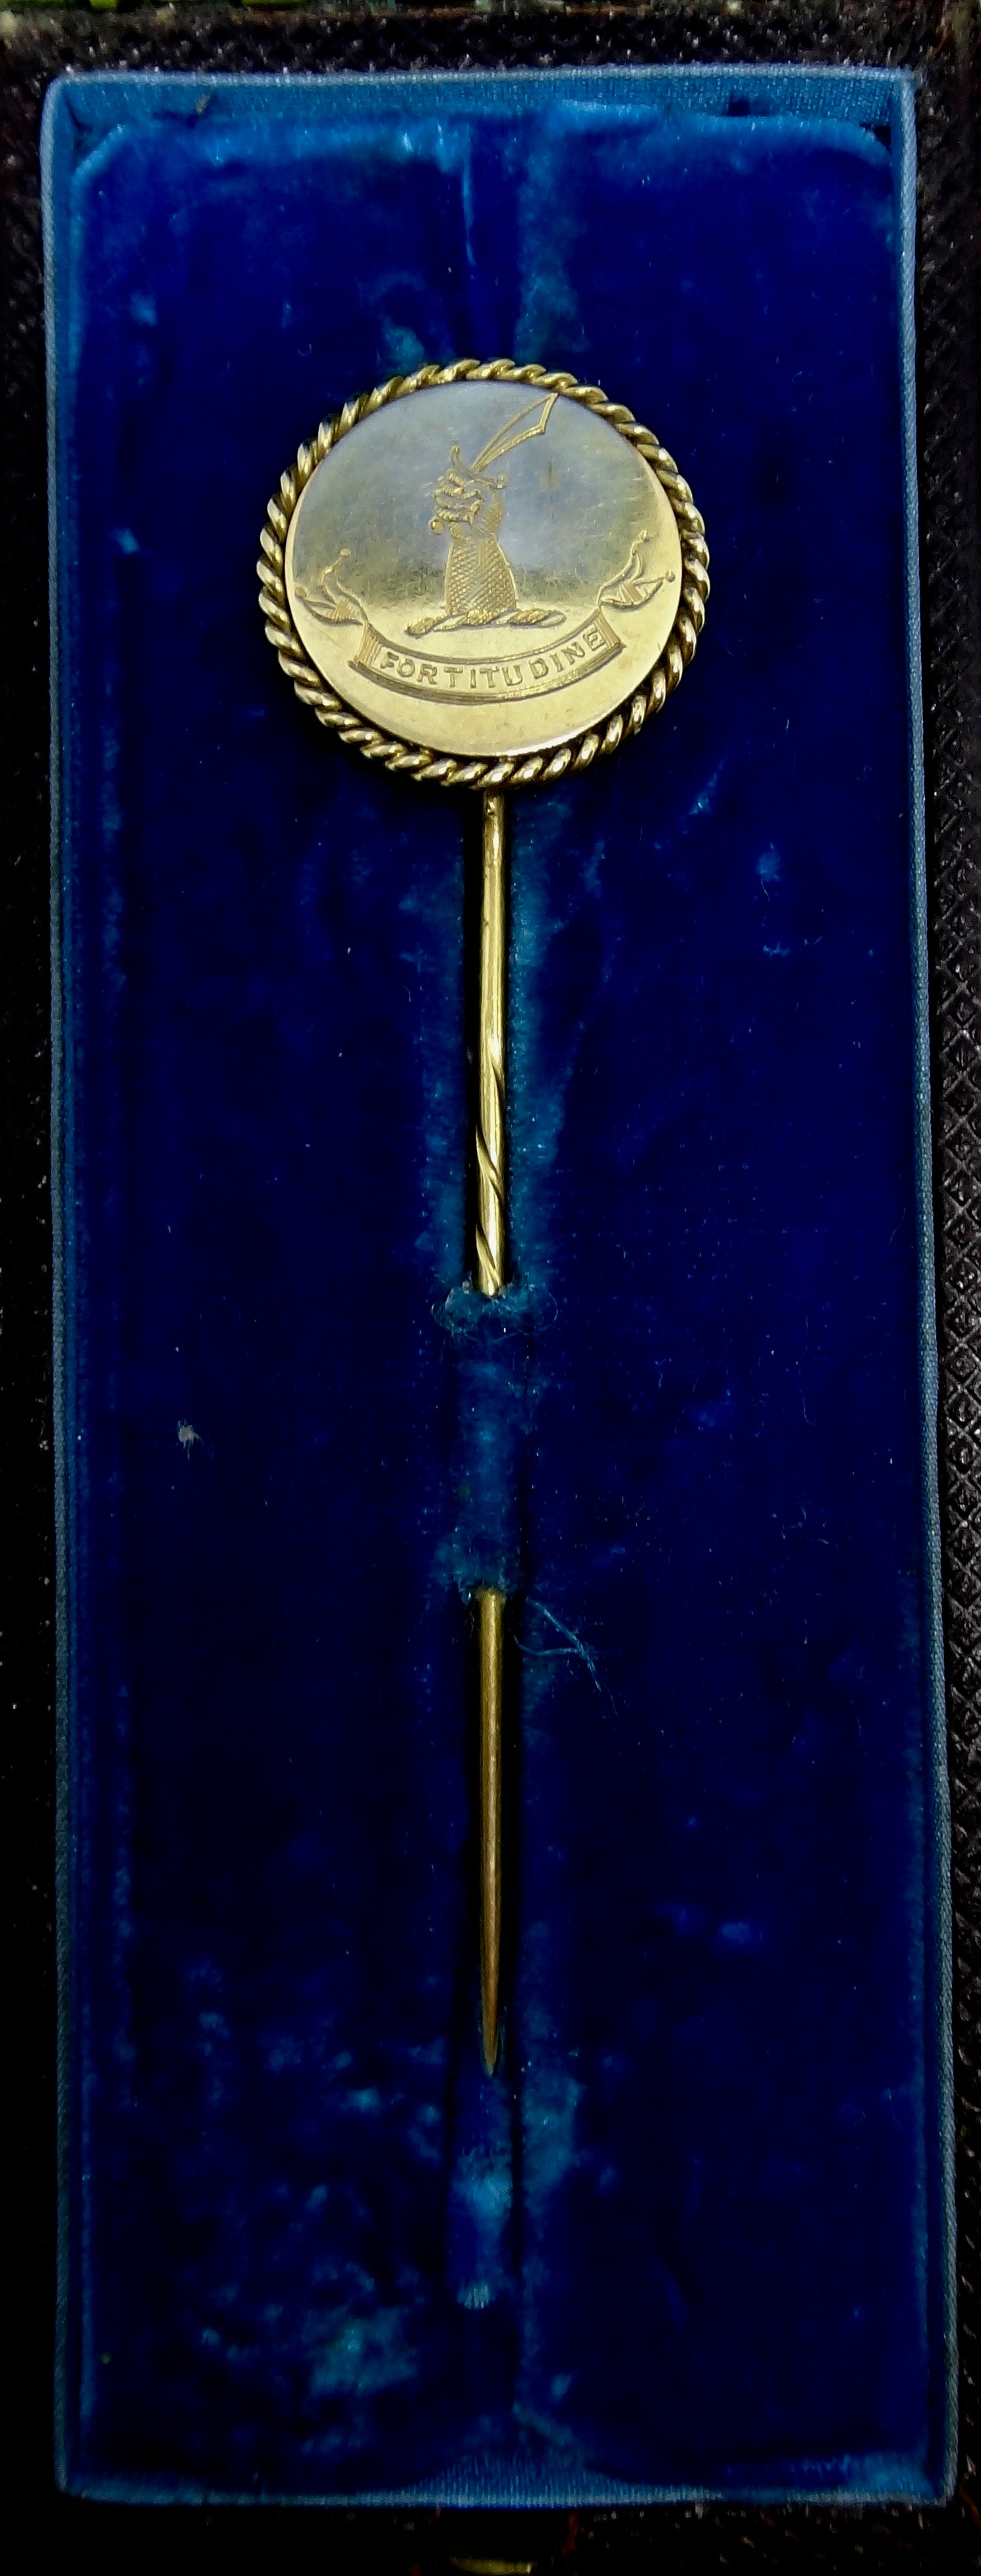 ANTIQUE 18CT Yellow GOLD Scarf Pin c. 1800s Macrae Family Crest